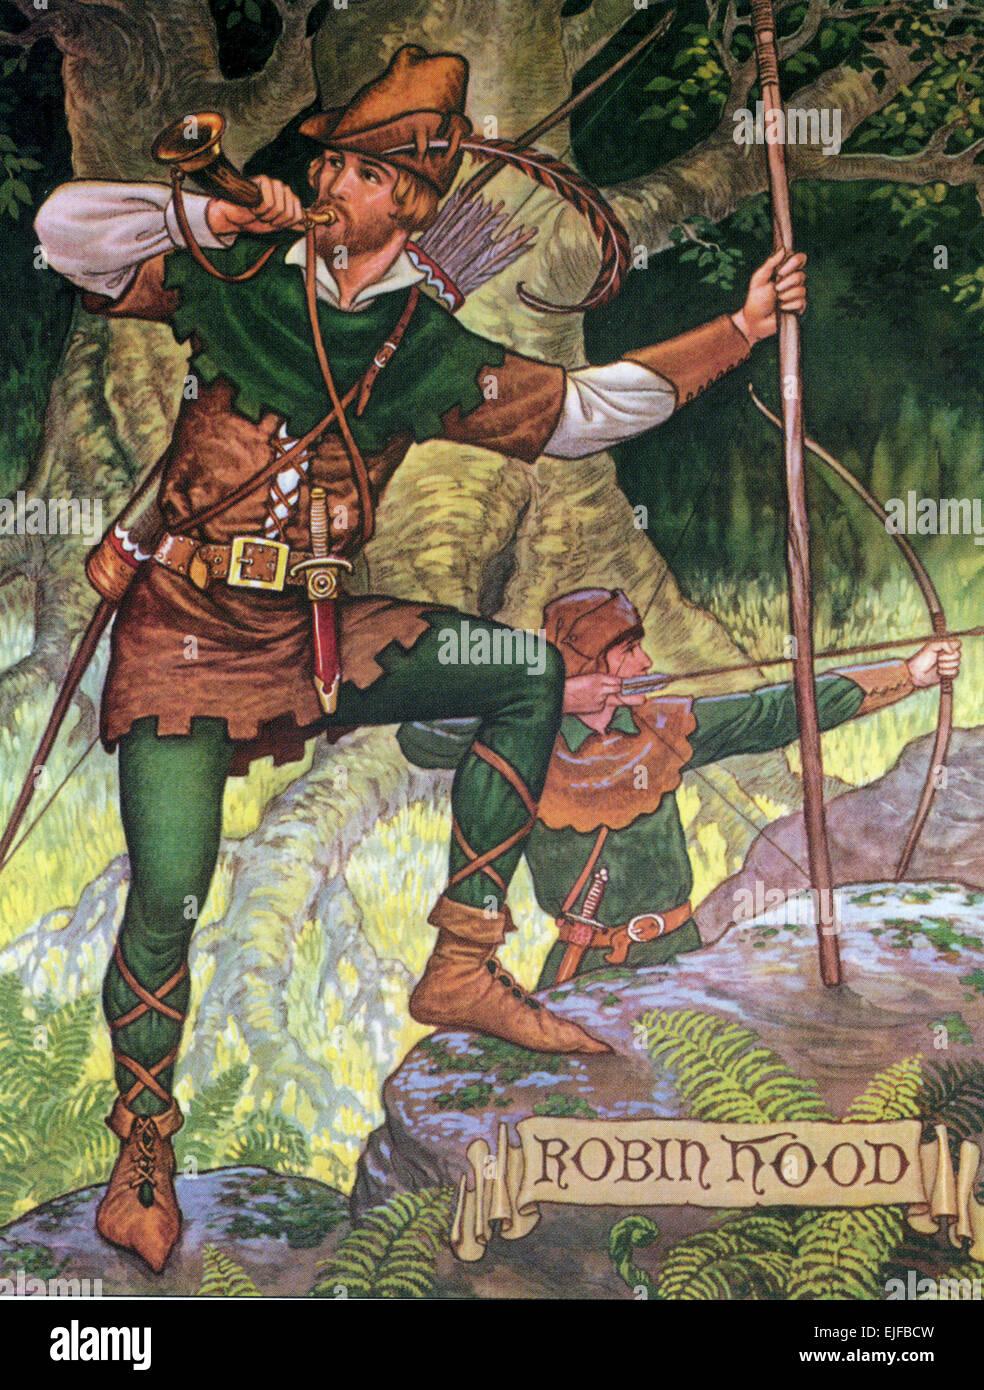 ROBIN HOOD in a late 19th century image - Stock Image